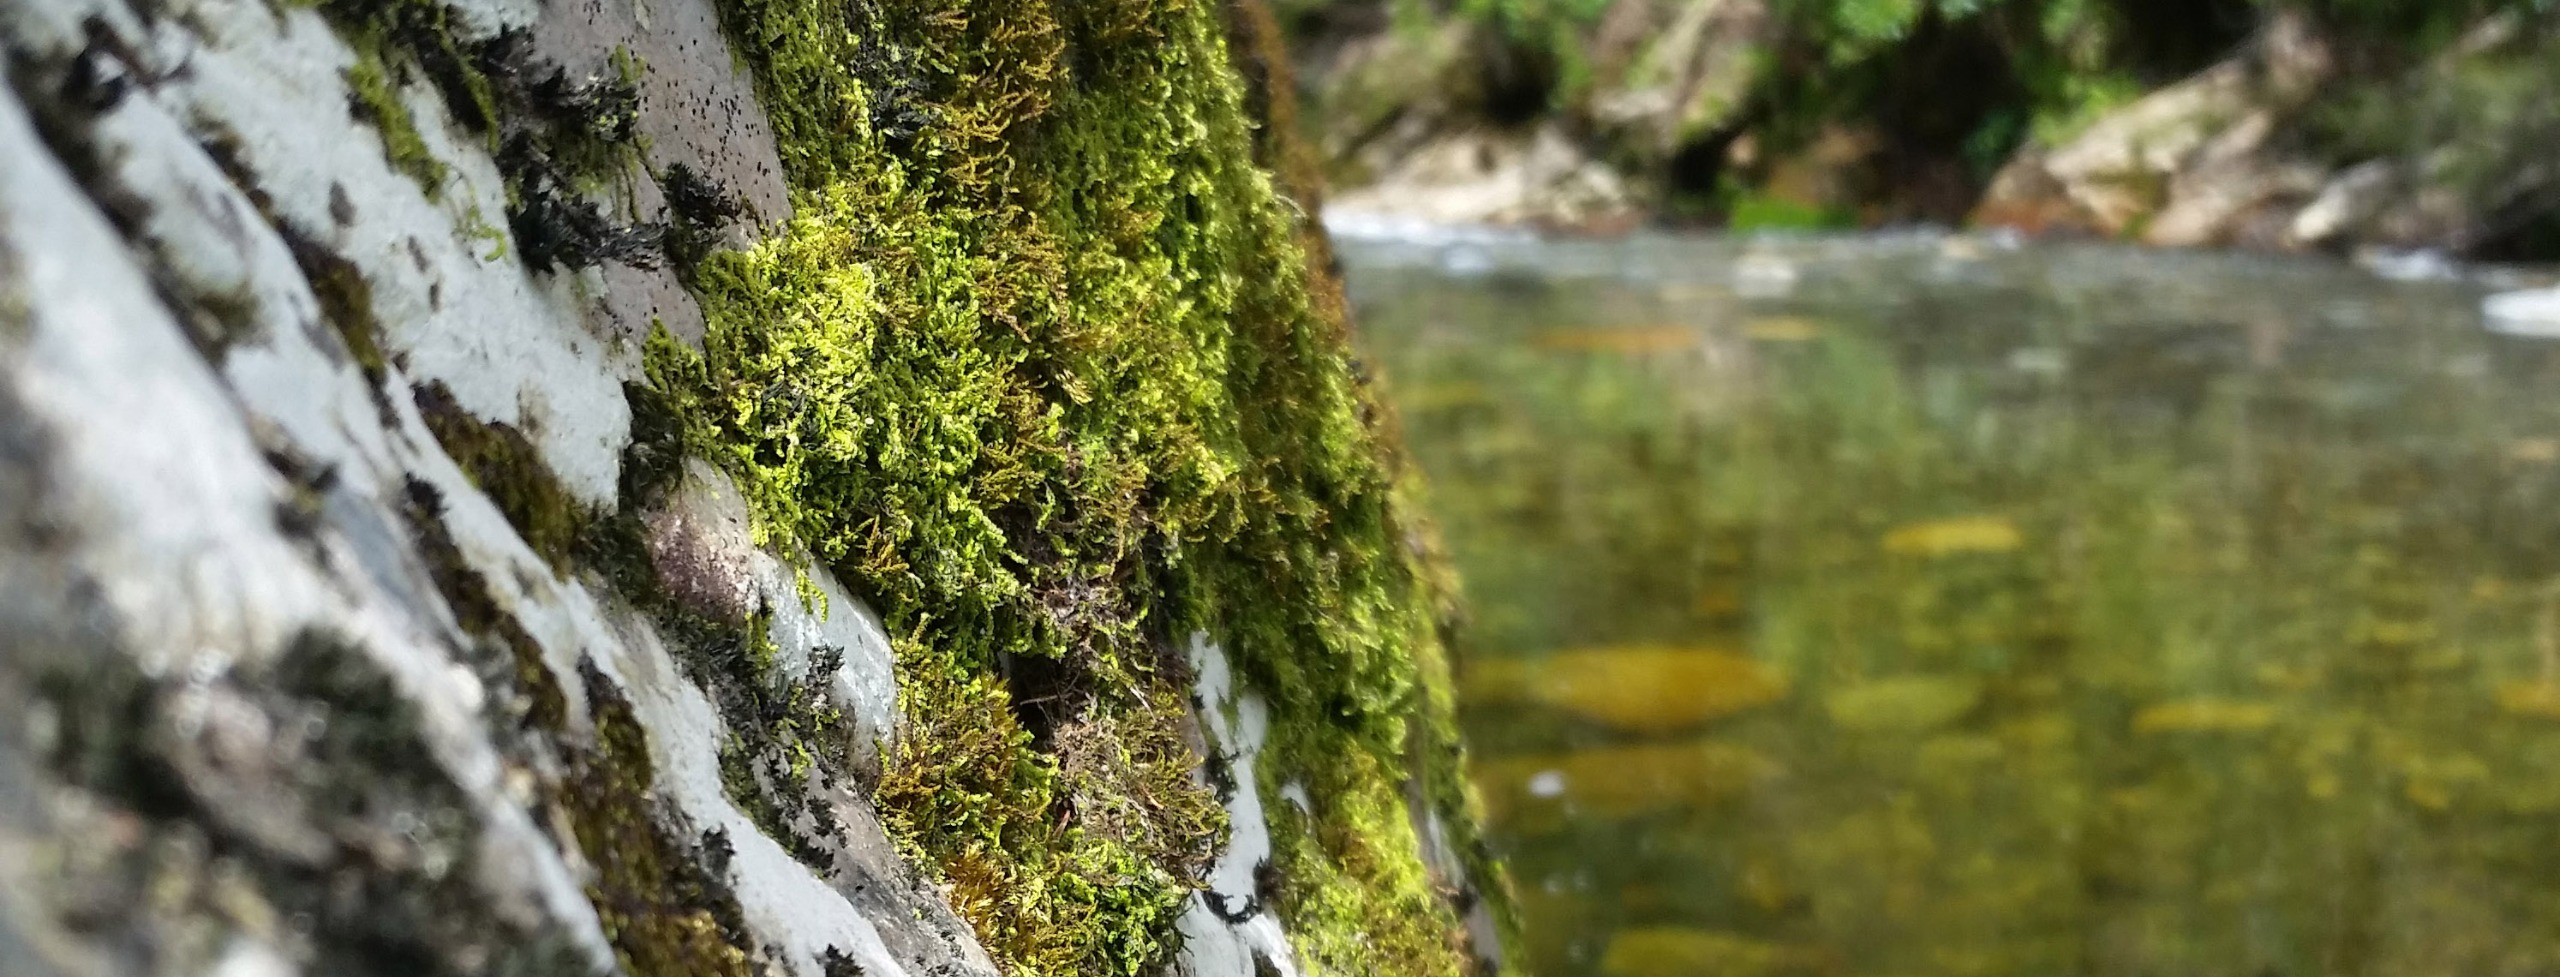 Various species of moss growing on a rock by a river